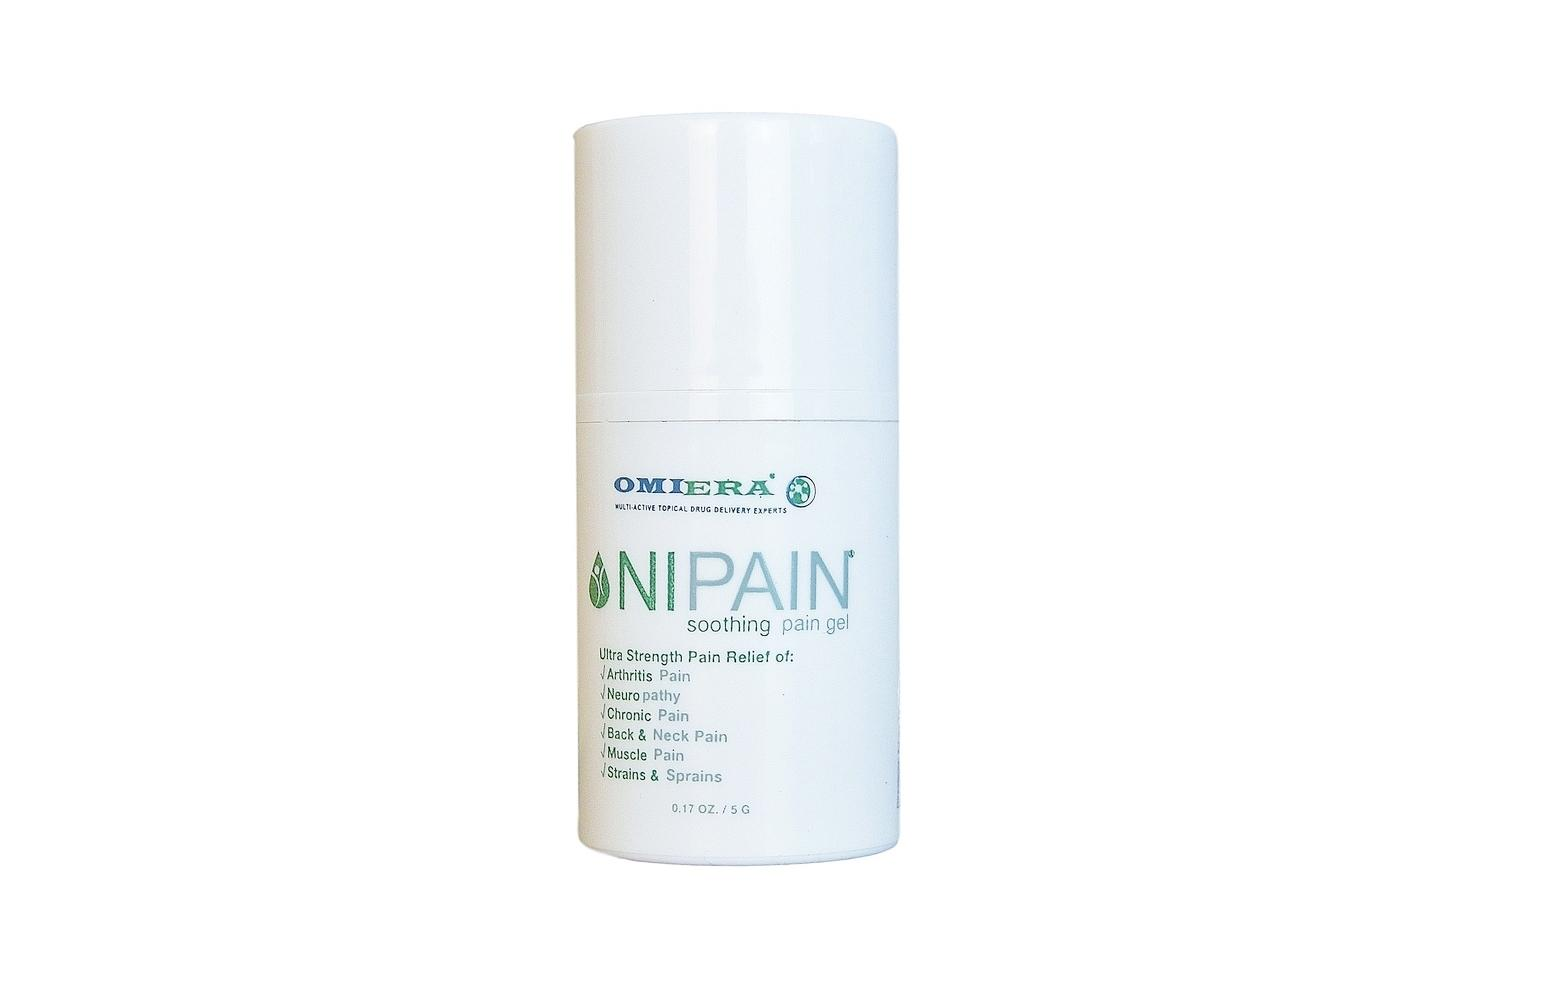 Nipain Arthritis & Muscle All Natural Pain Relief Cream (5g)